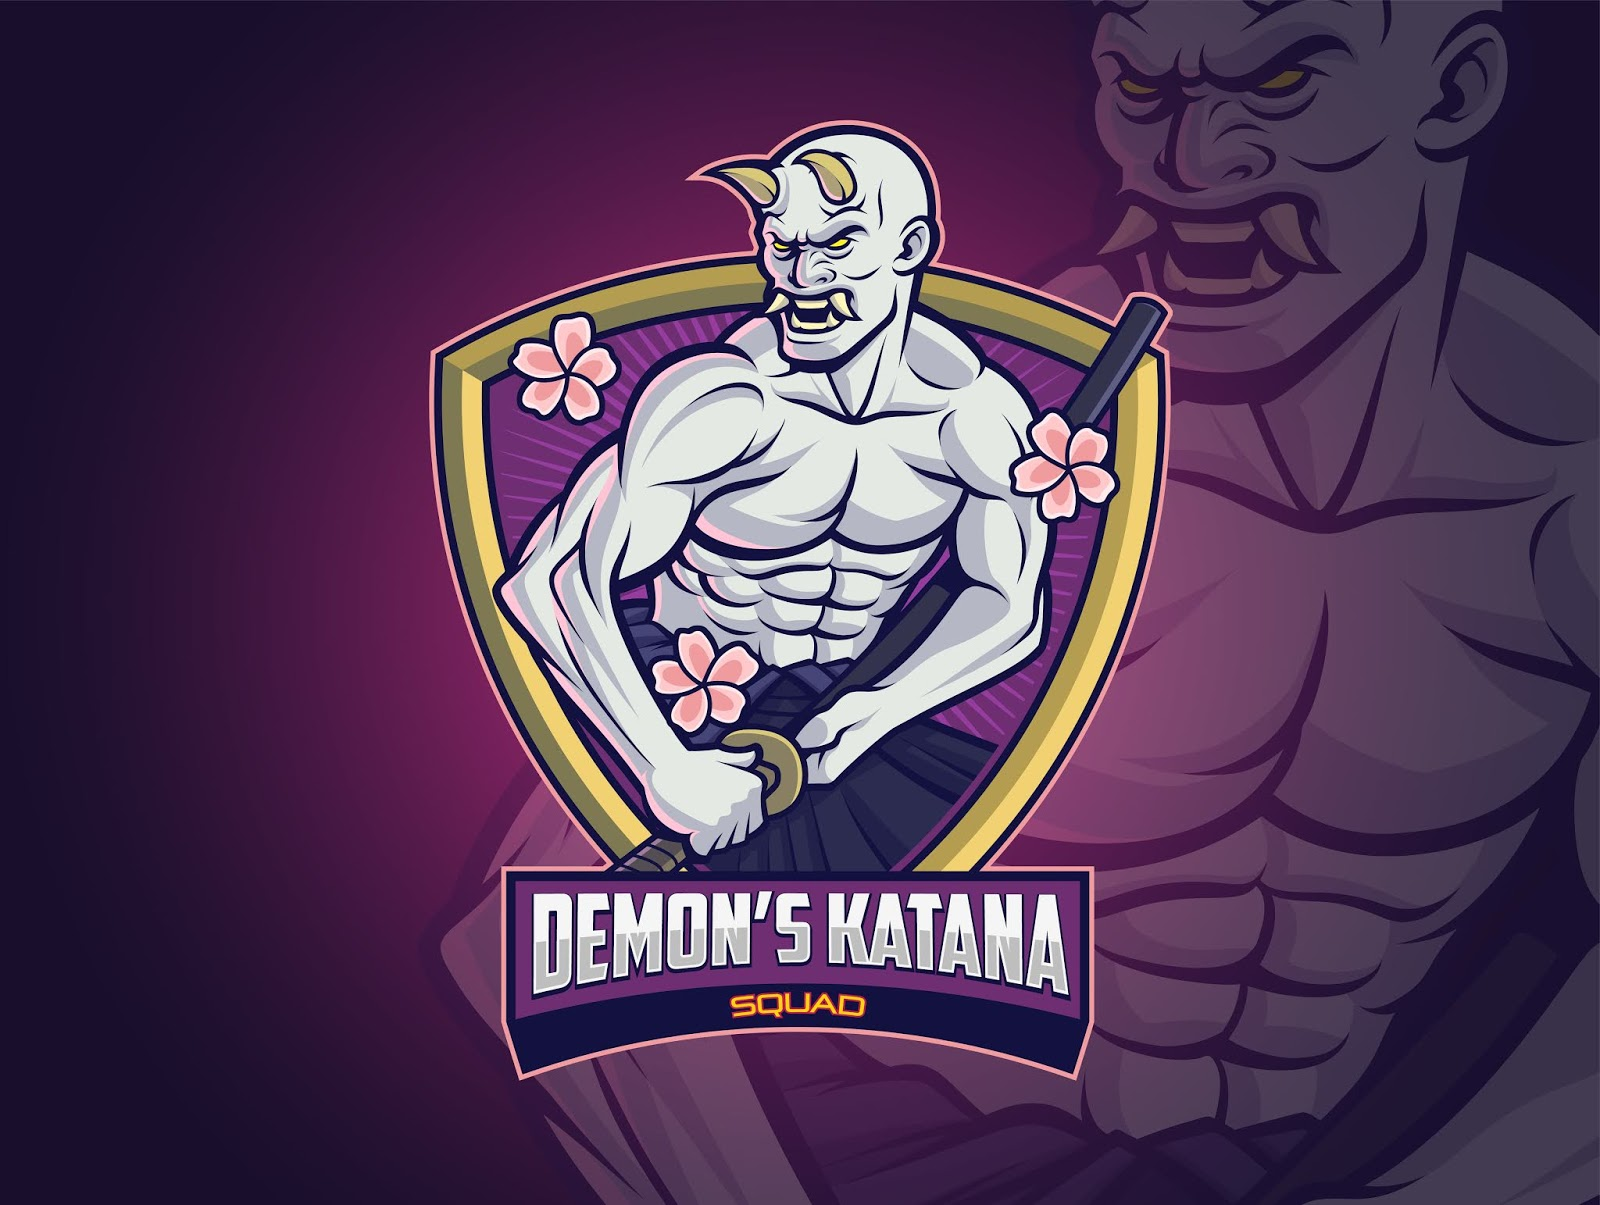 Hannya Demon Esports Logo Design Your Squad Free Download Vector CDR, AI, EPS and PNG Formats